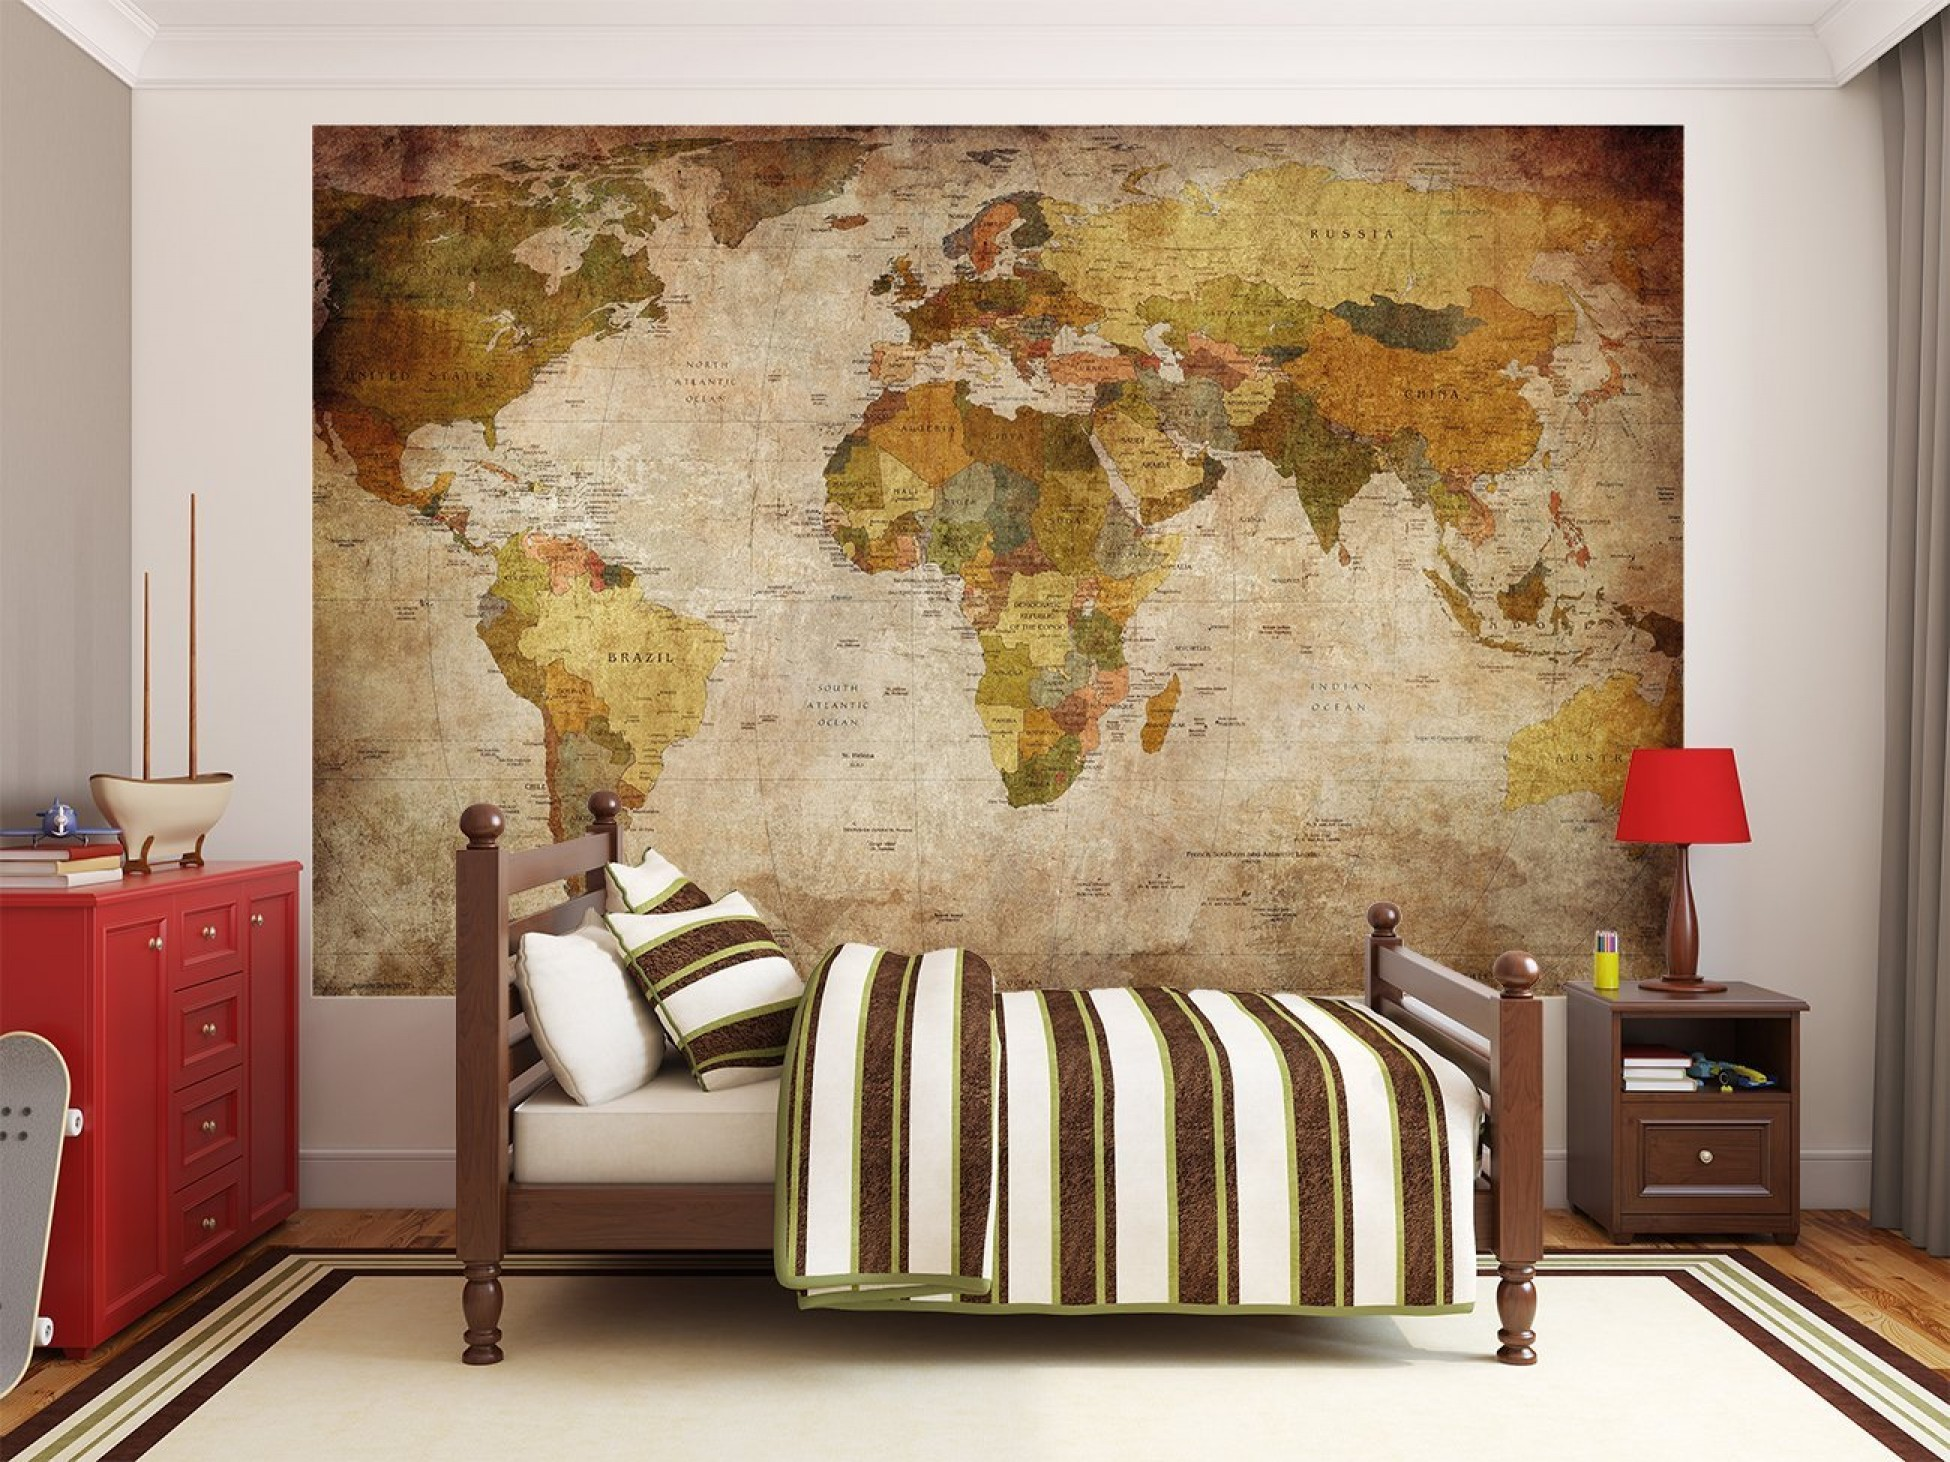 world map photo wallpaper mural vintage retro motif xxl world map home decor ebay. Black Bedroom Furniture Sets. Home Design Ideas